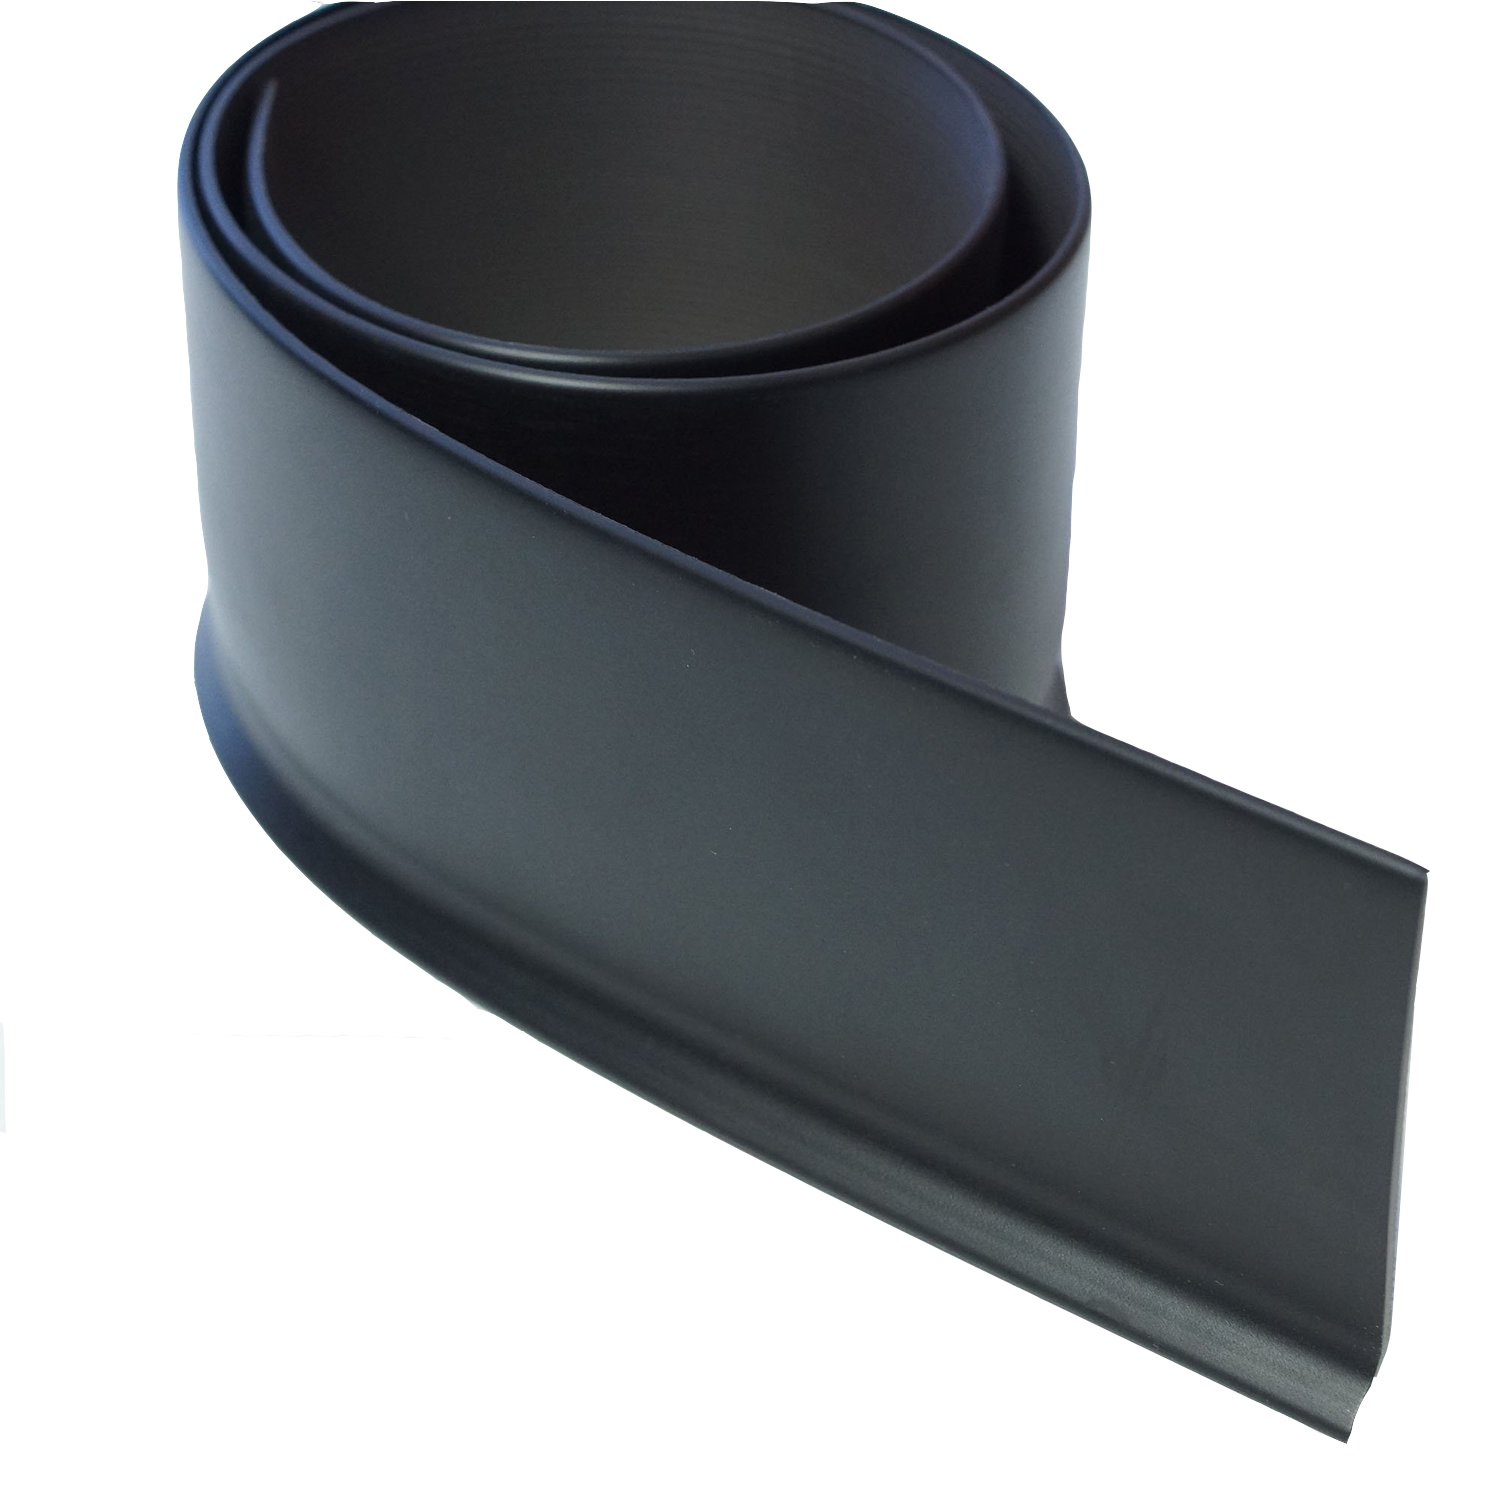 1/8'' Vinyl Cove Base with Toe for Home, Office, and Garage - 40 ft Pack - Black #701